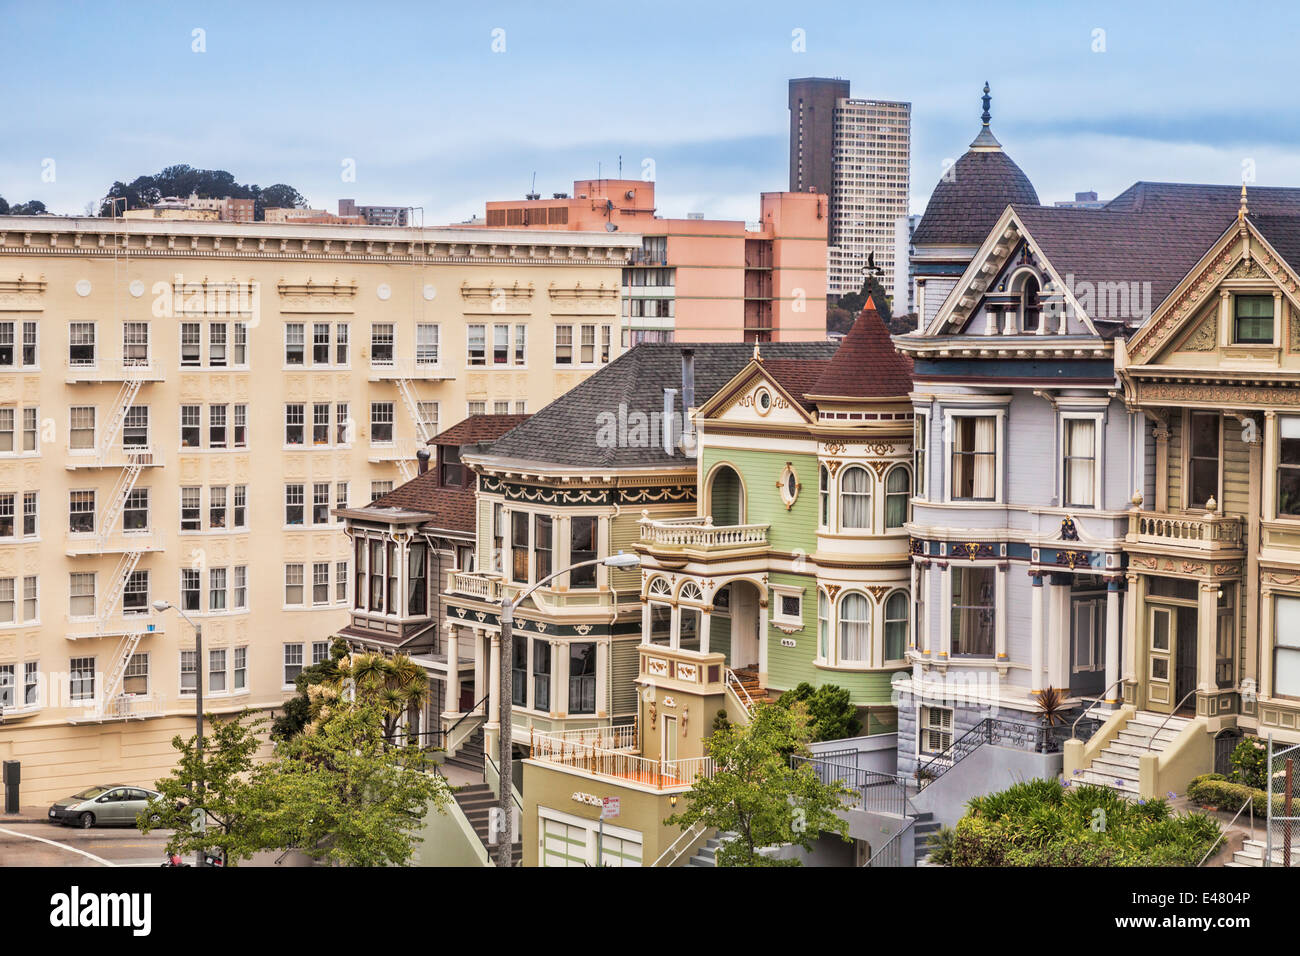 Beautiful old houses in Alamo Square, San Francisco, known as the Painted Ladies. They are an icon of the city. - Stock Image